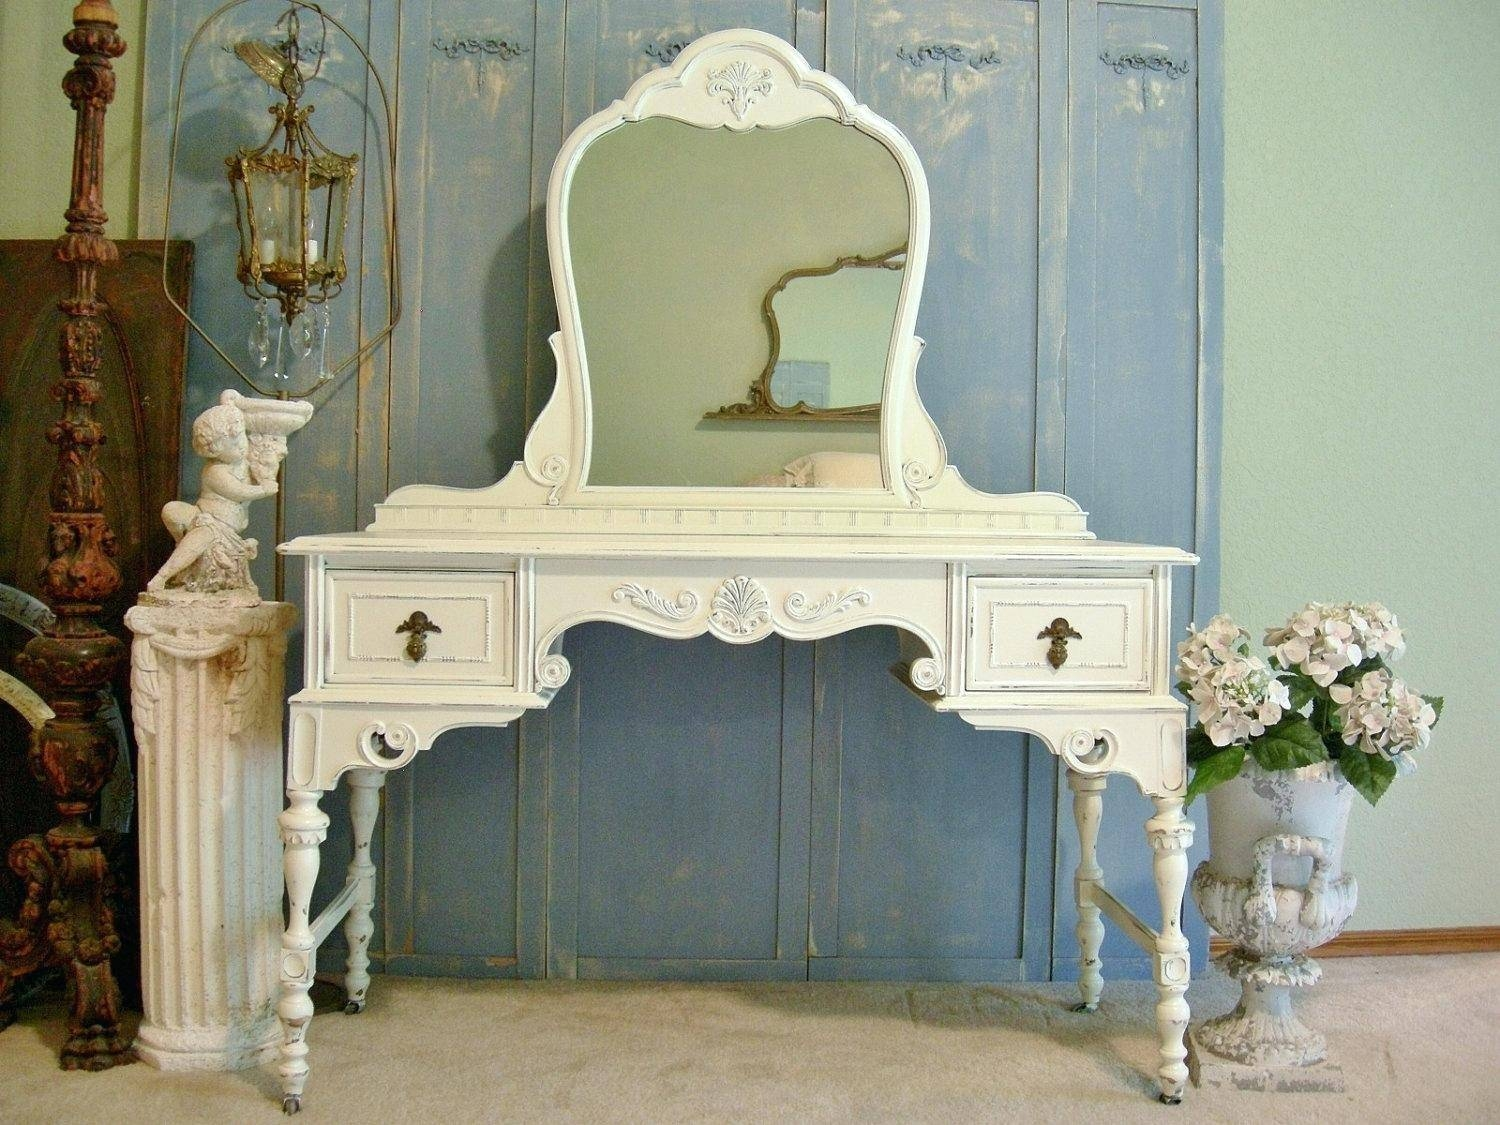 25 Cozy Shabby Chic Furniture Ideas For Your Homeshabby White inside White Shabby Chic Mirrors Sale (Image 3 of 25)